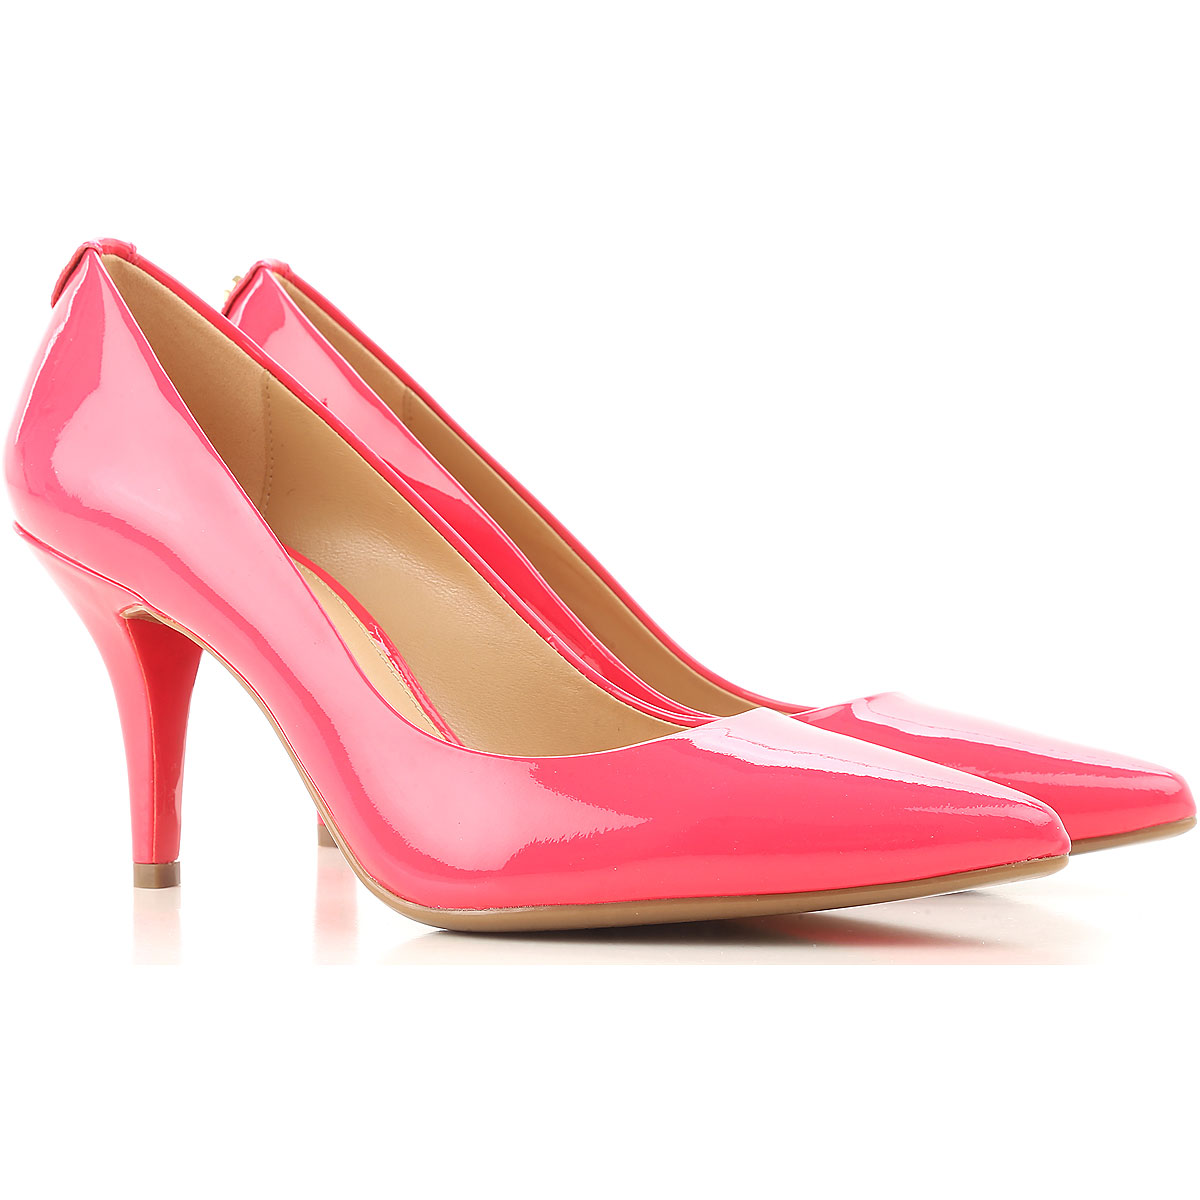 Michael Kors Pumps & High Heels for Women On Sale, fuxia, Patent, 2017, 4